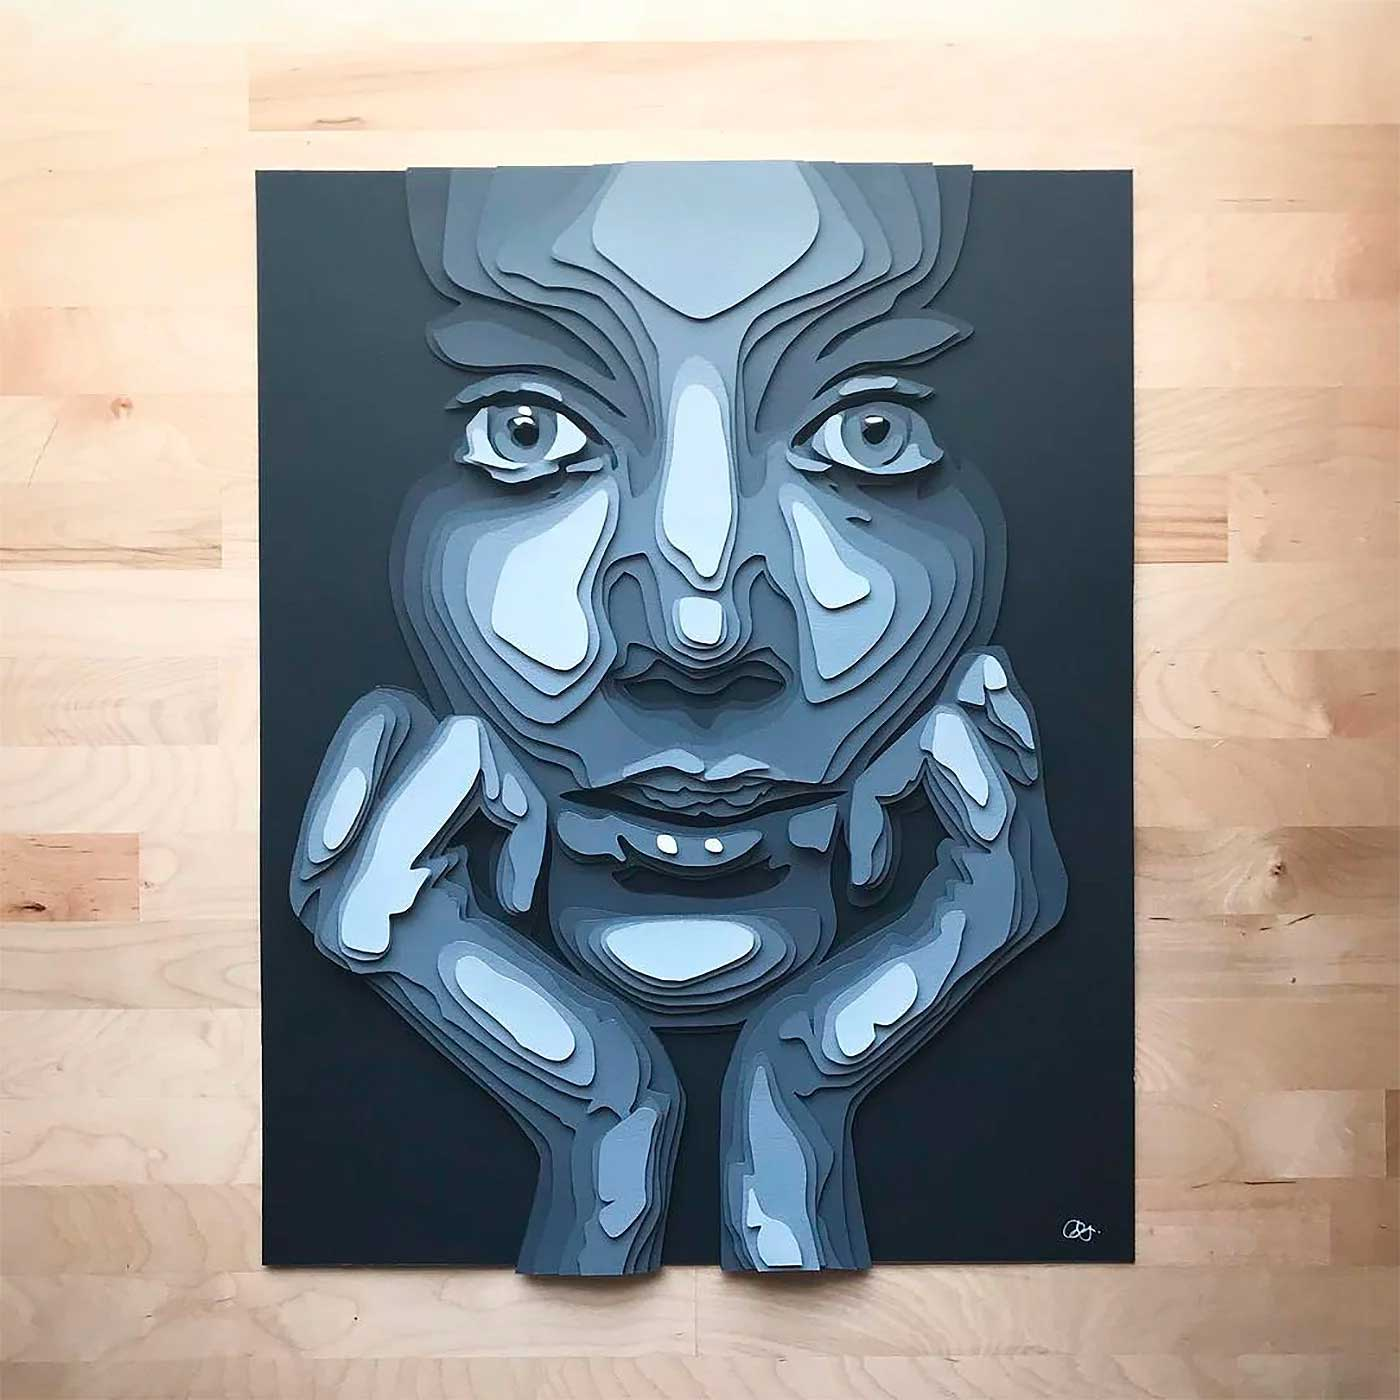 Papier-Portraits von Shelley Castillo Garcia